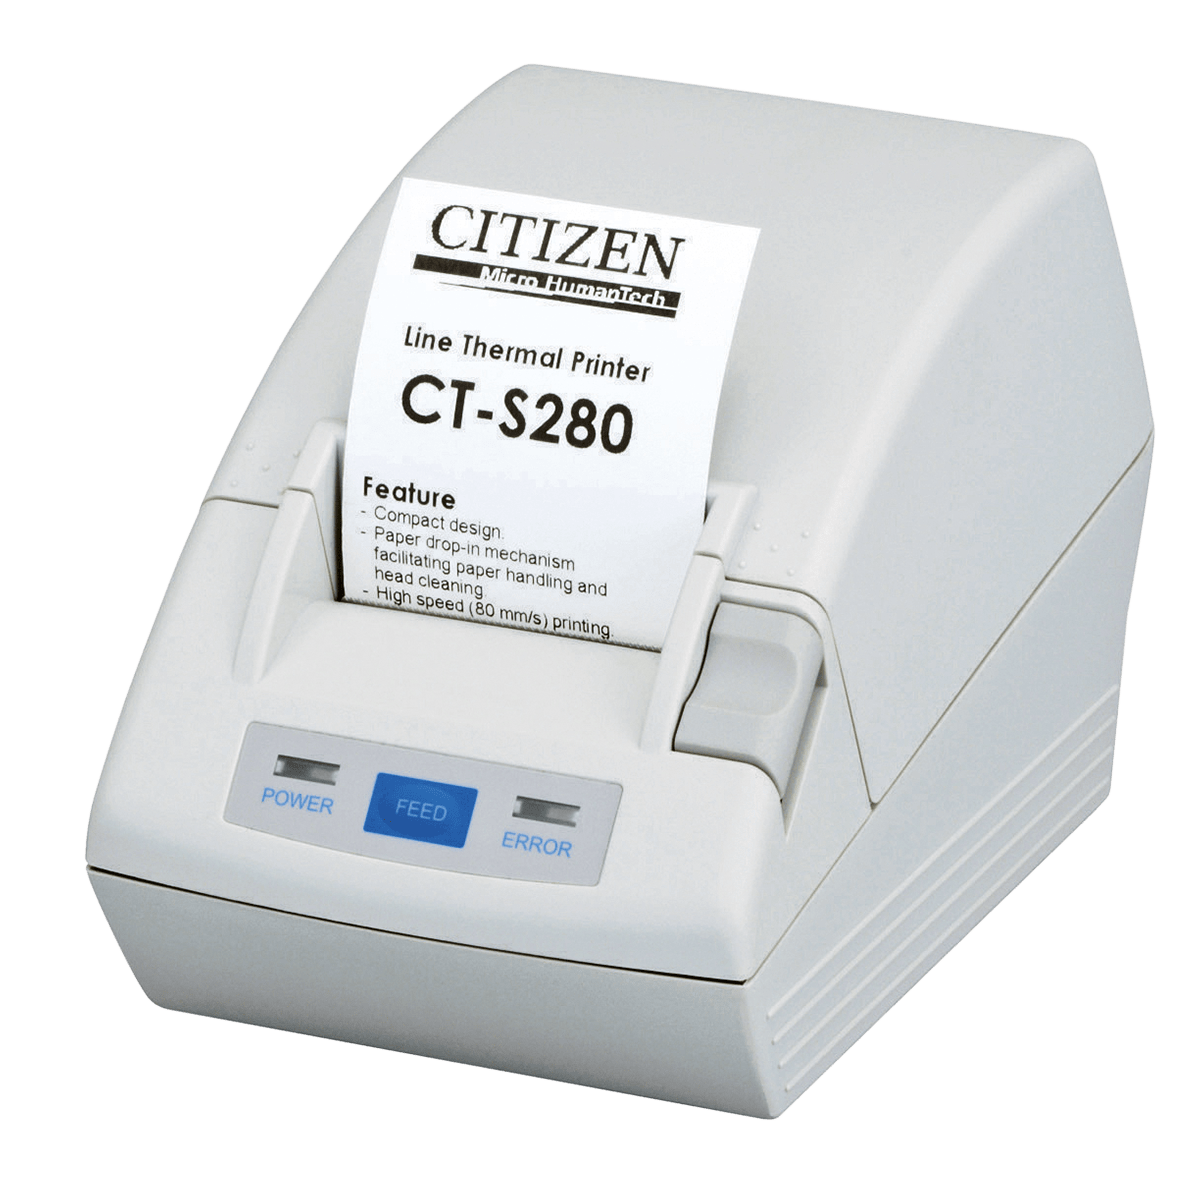 CITIZEN CT-S280/281